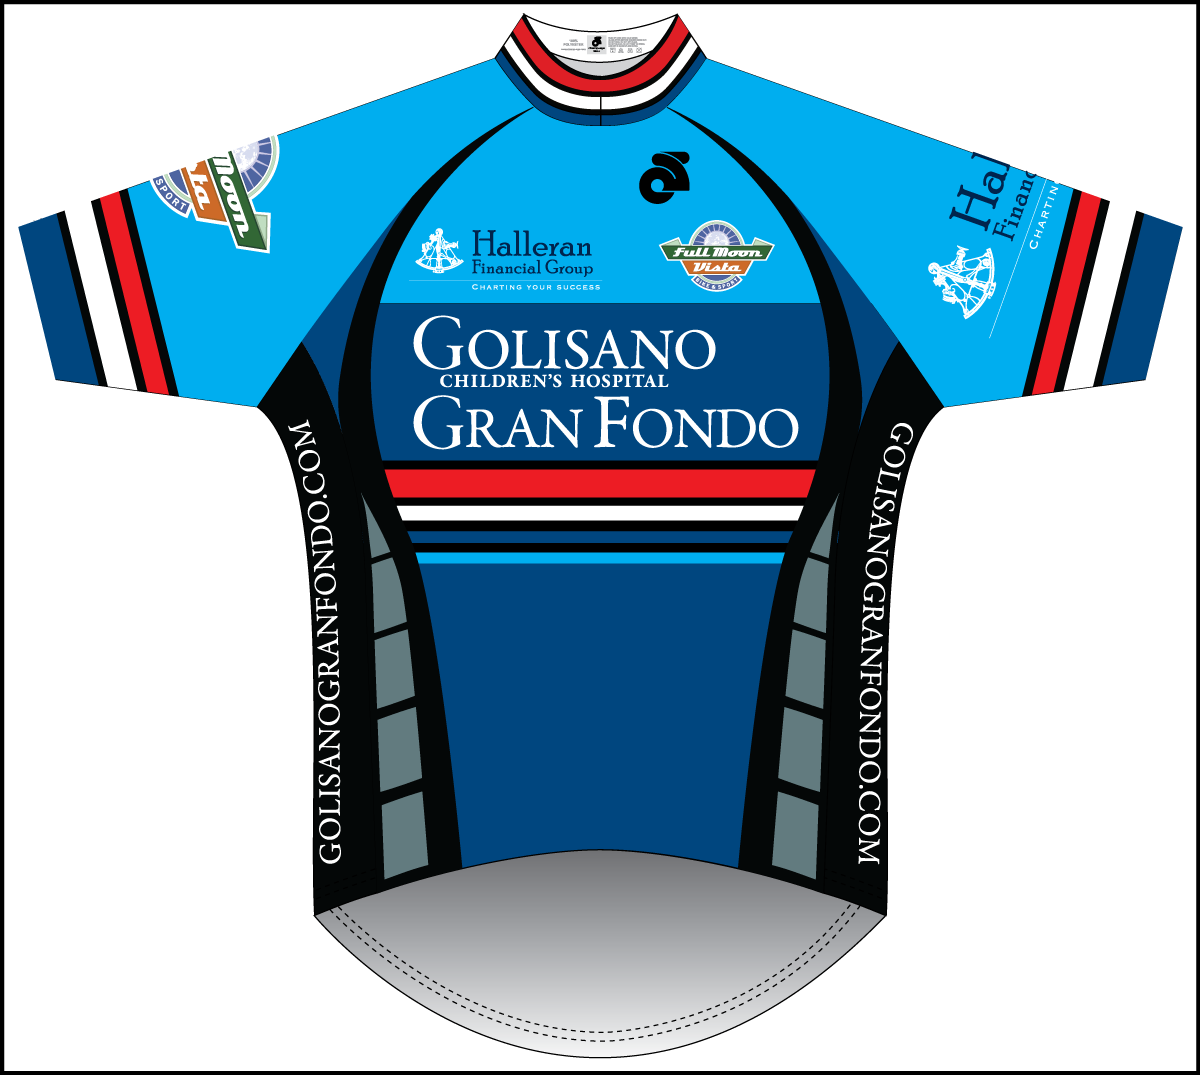 Jersey for 50-mile riders